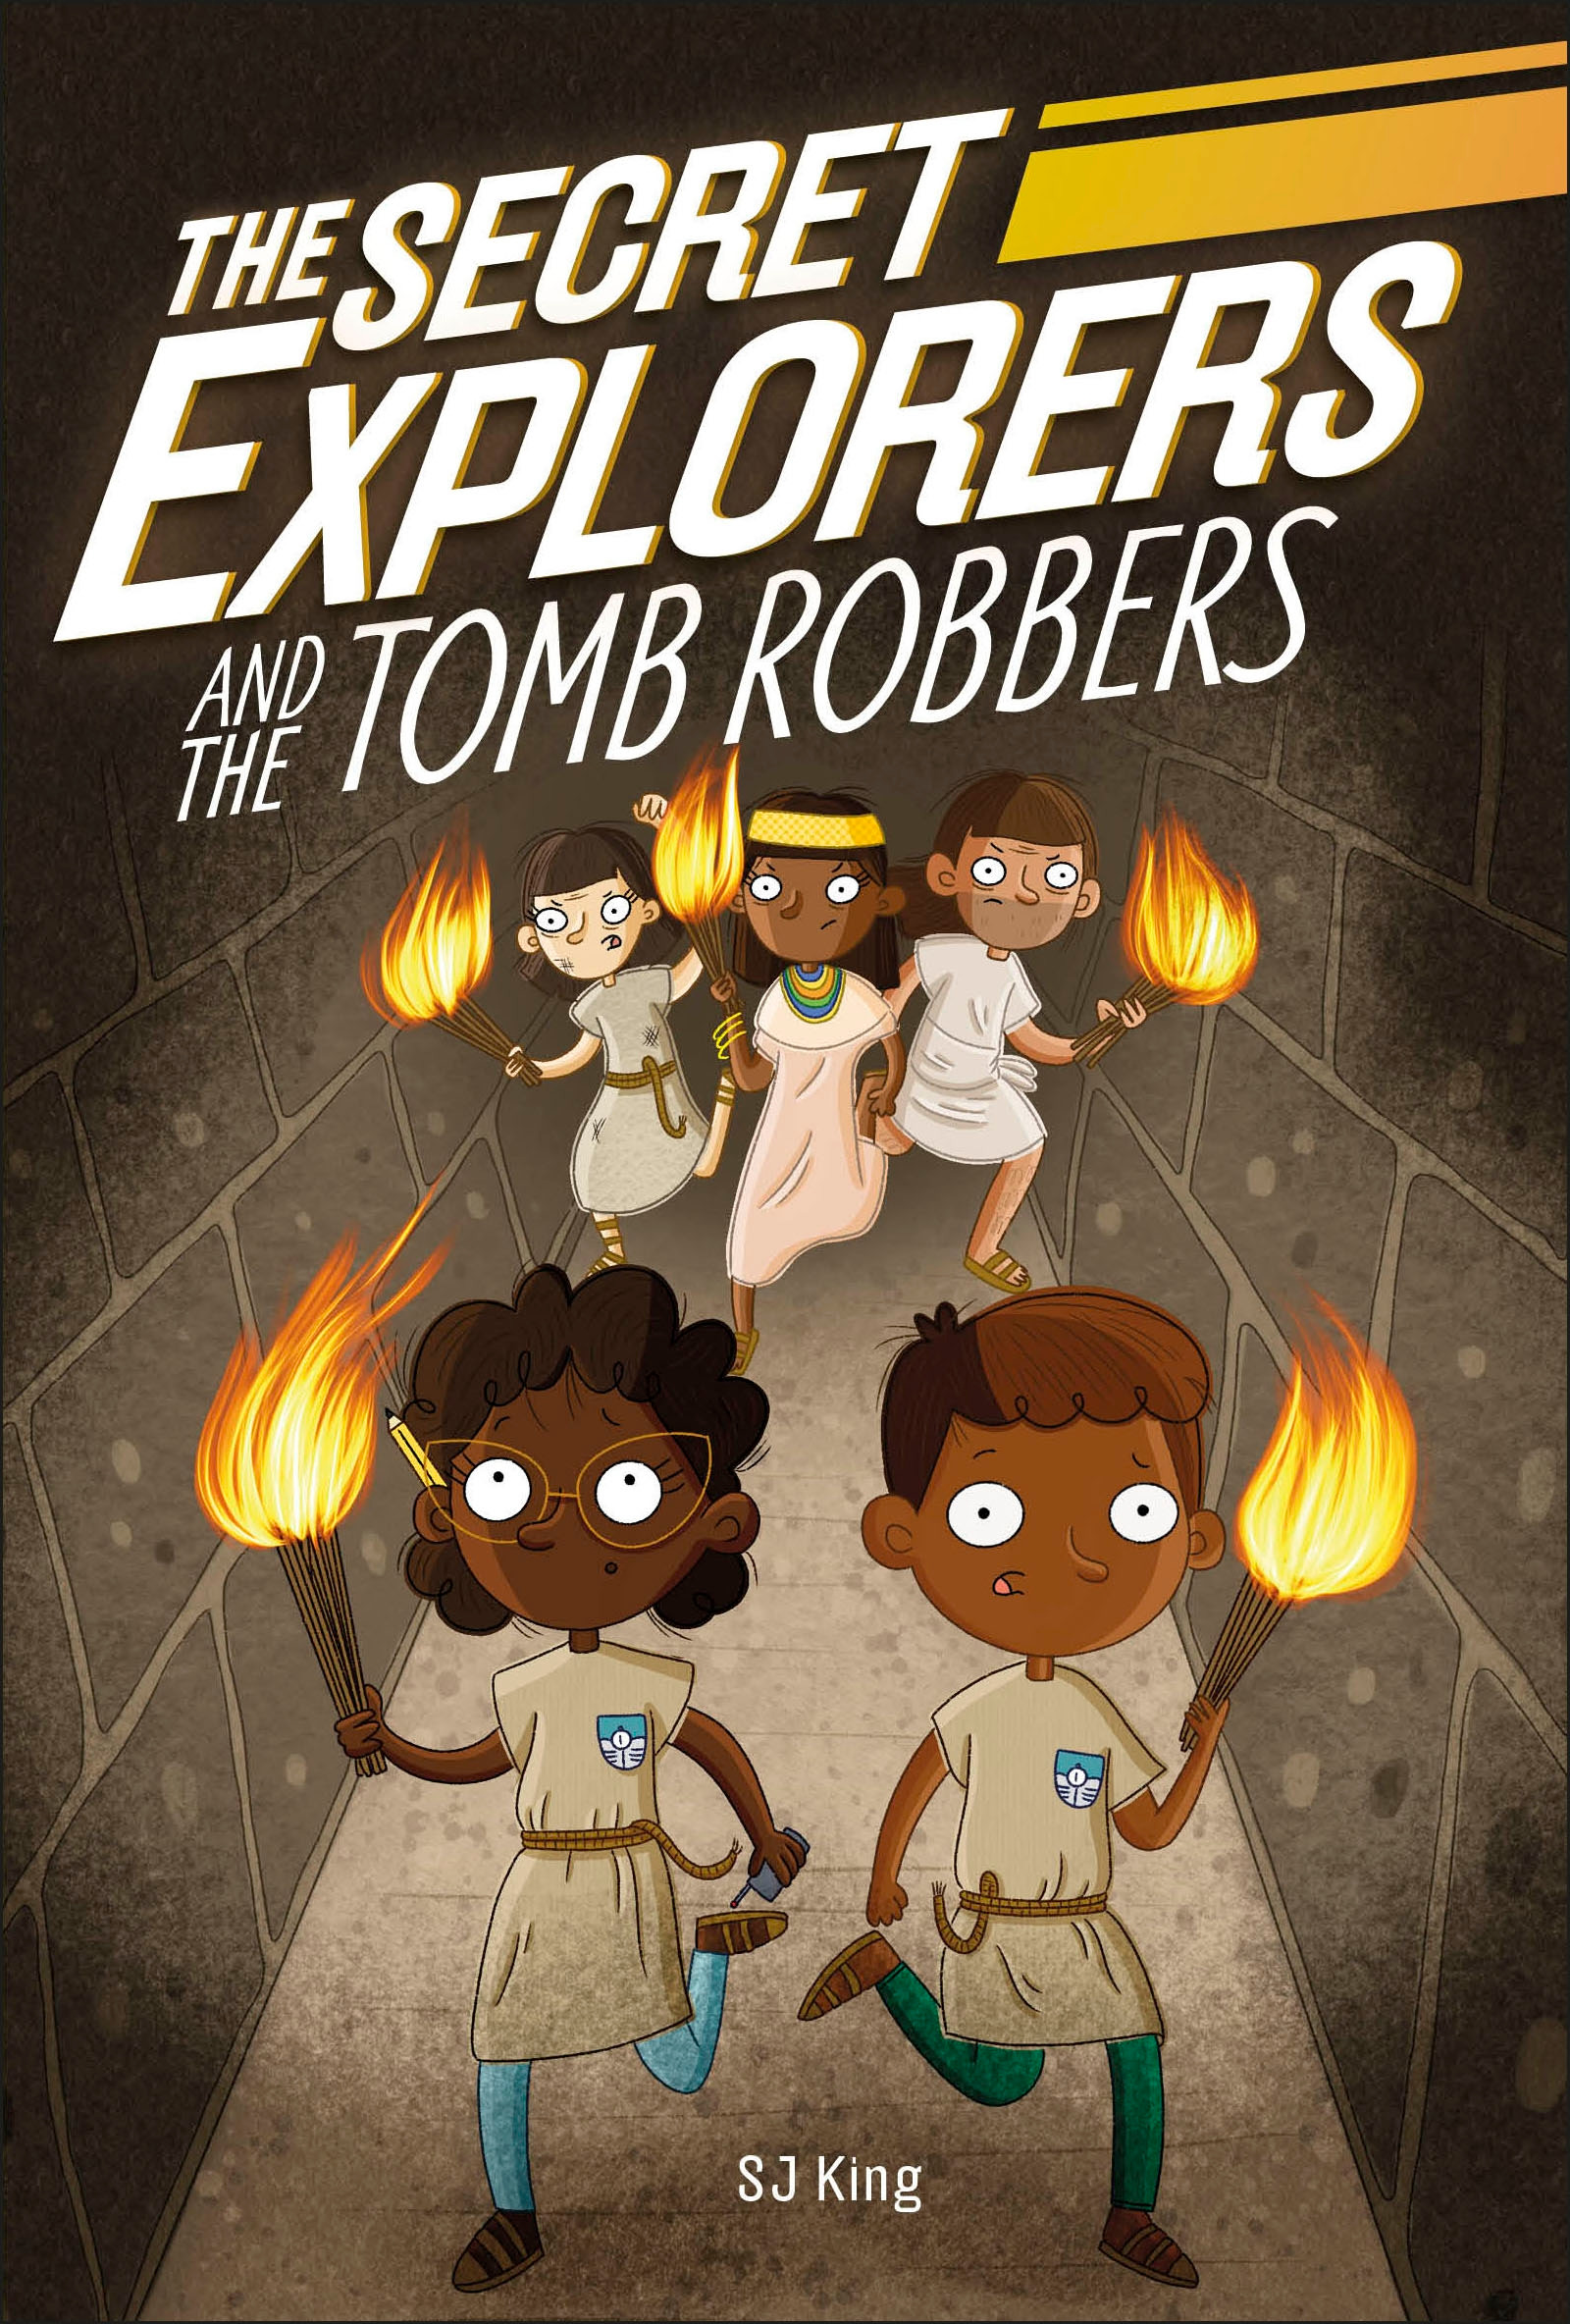 The Secret Explorers - The Secret Explorers and the Tomb Robbers | 6-8 years old